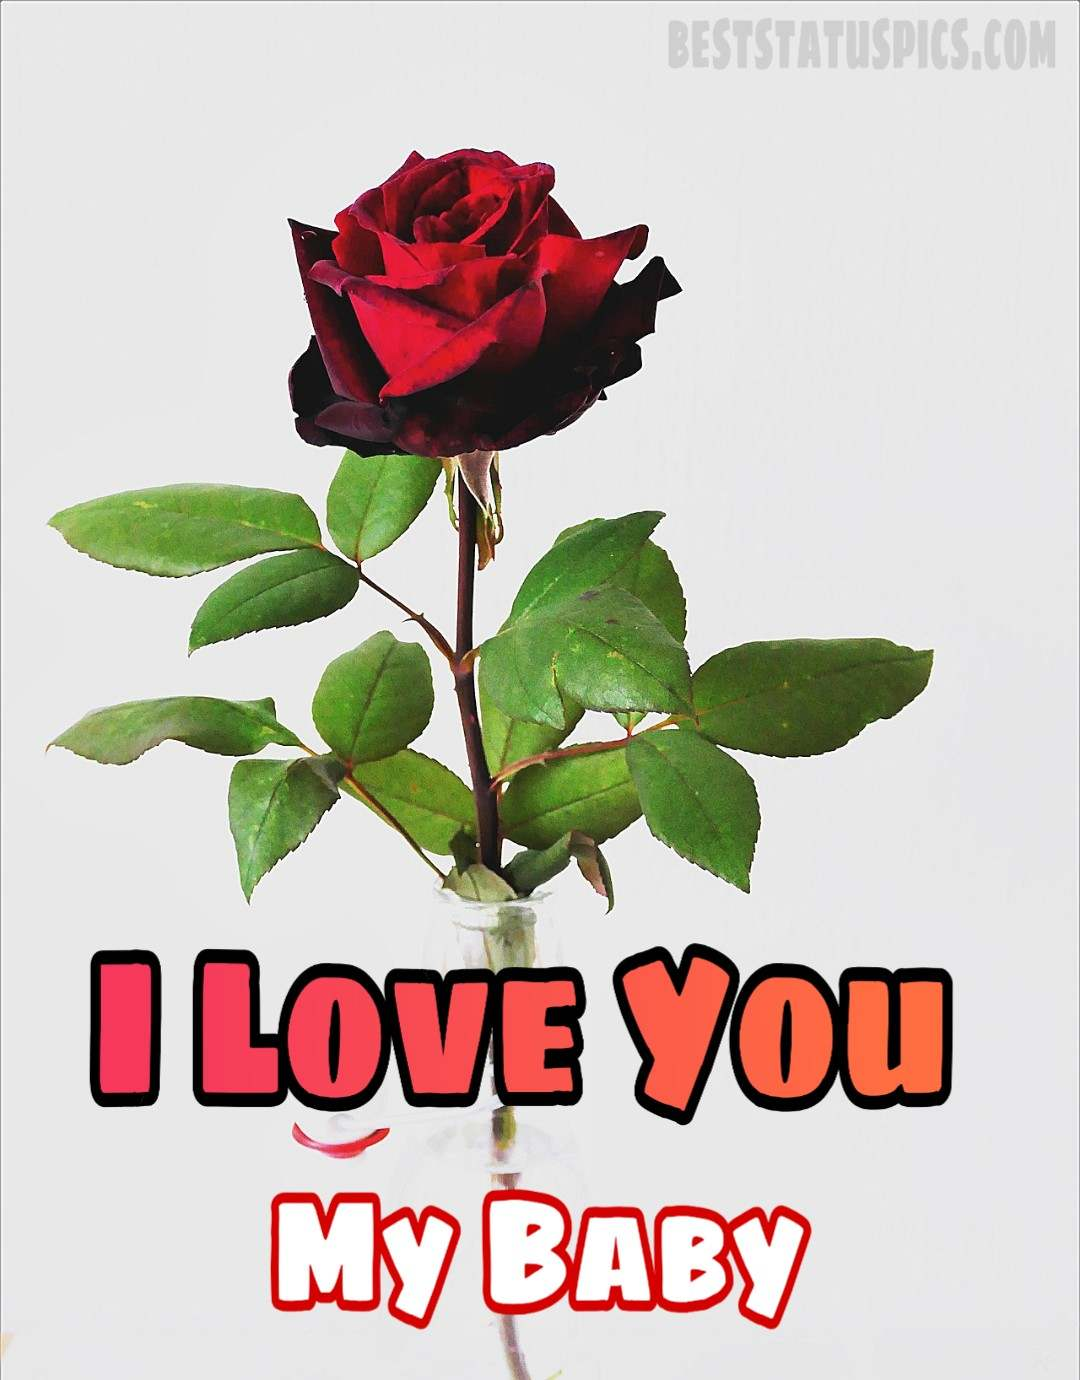 New I Love You Whatsapp Dp Pictures Hd Images Photo Best Status Pics